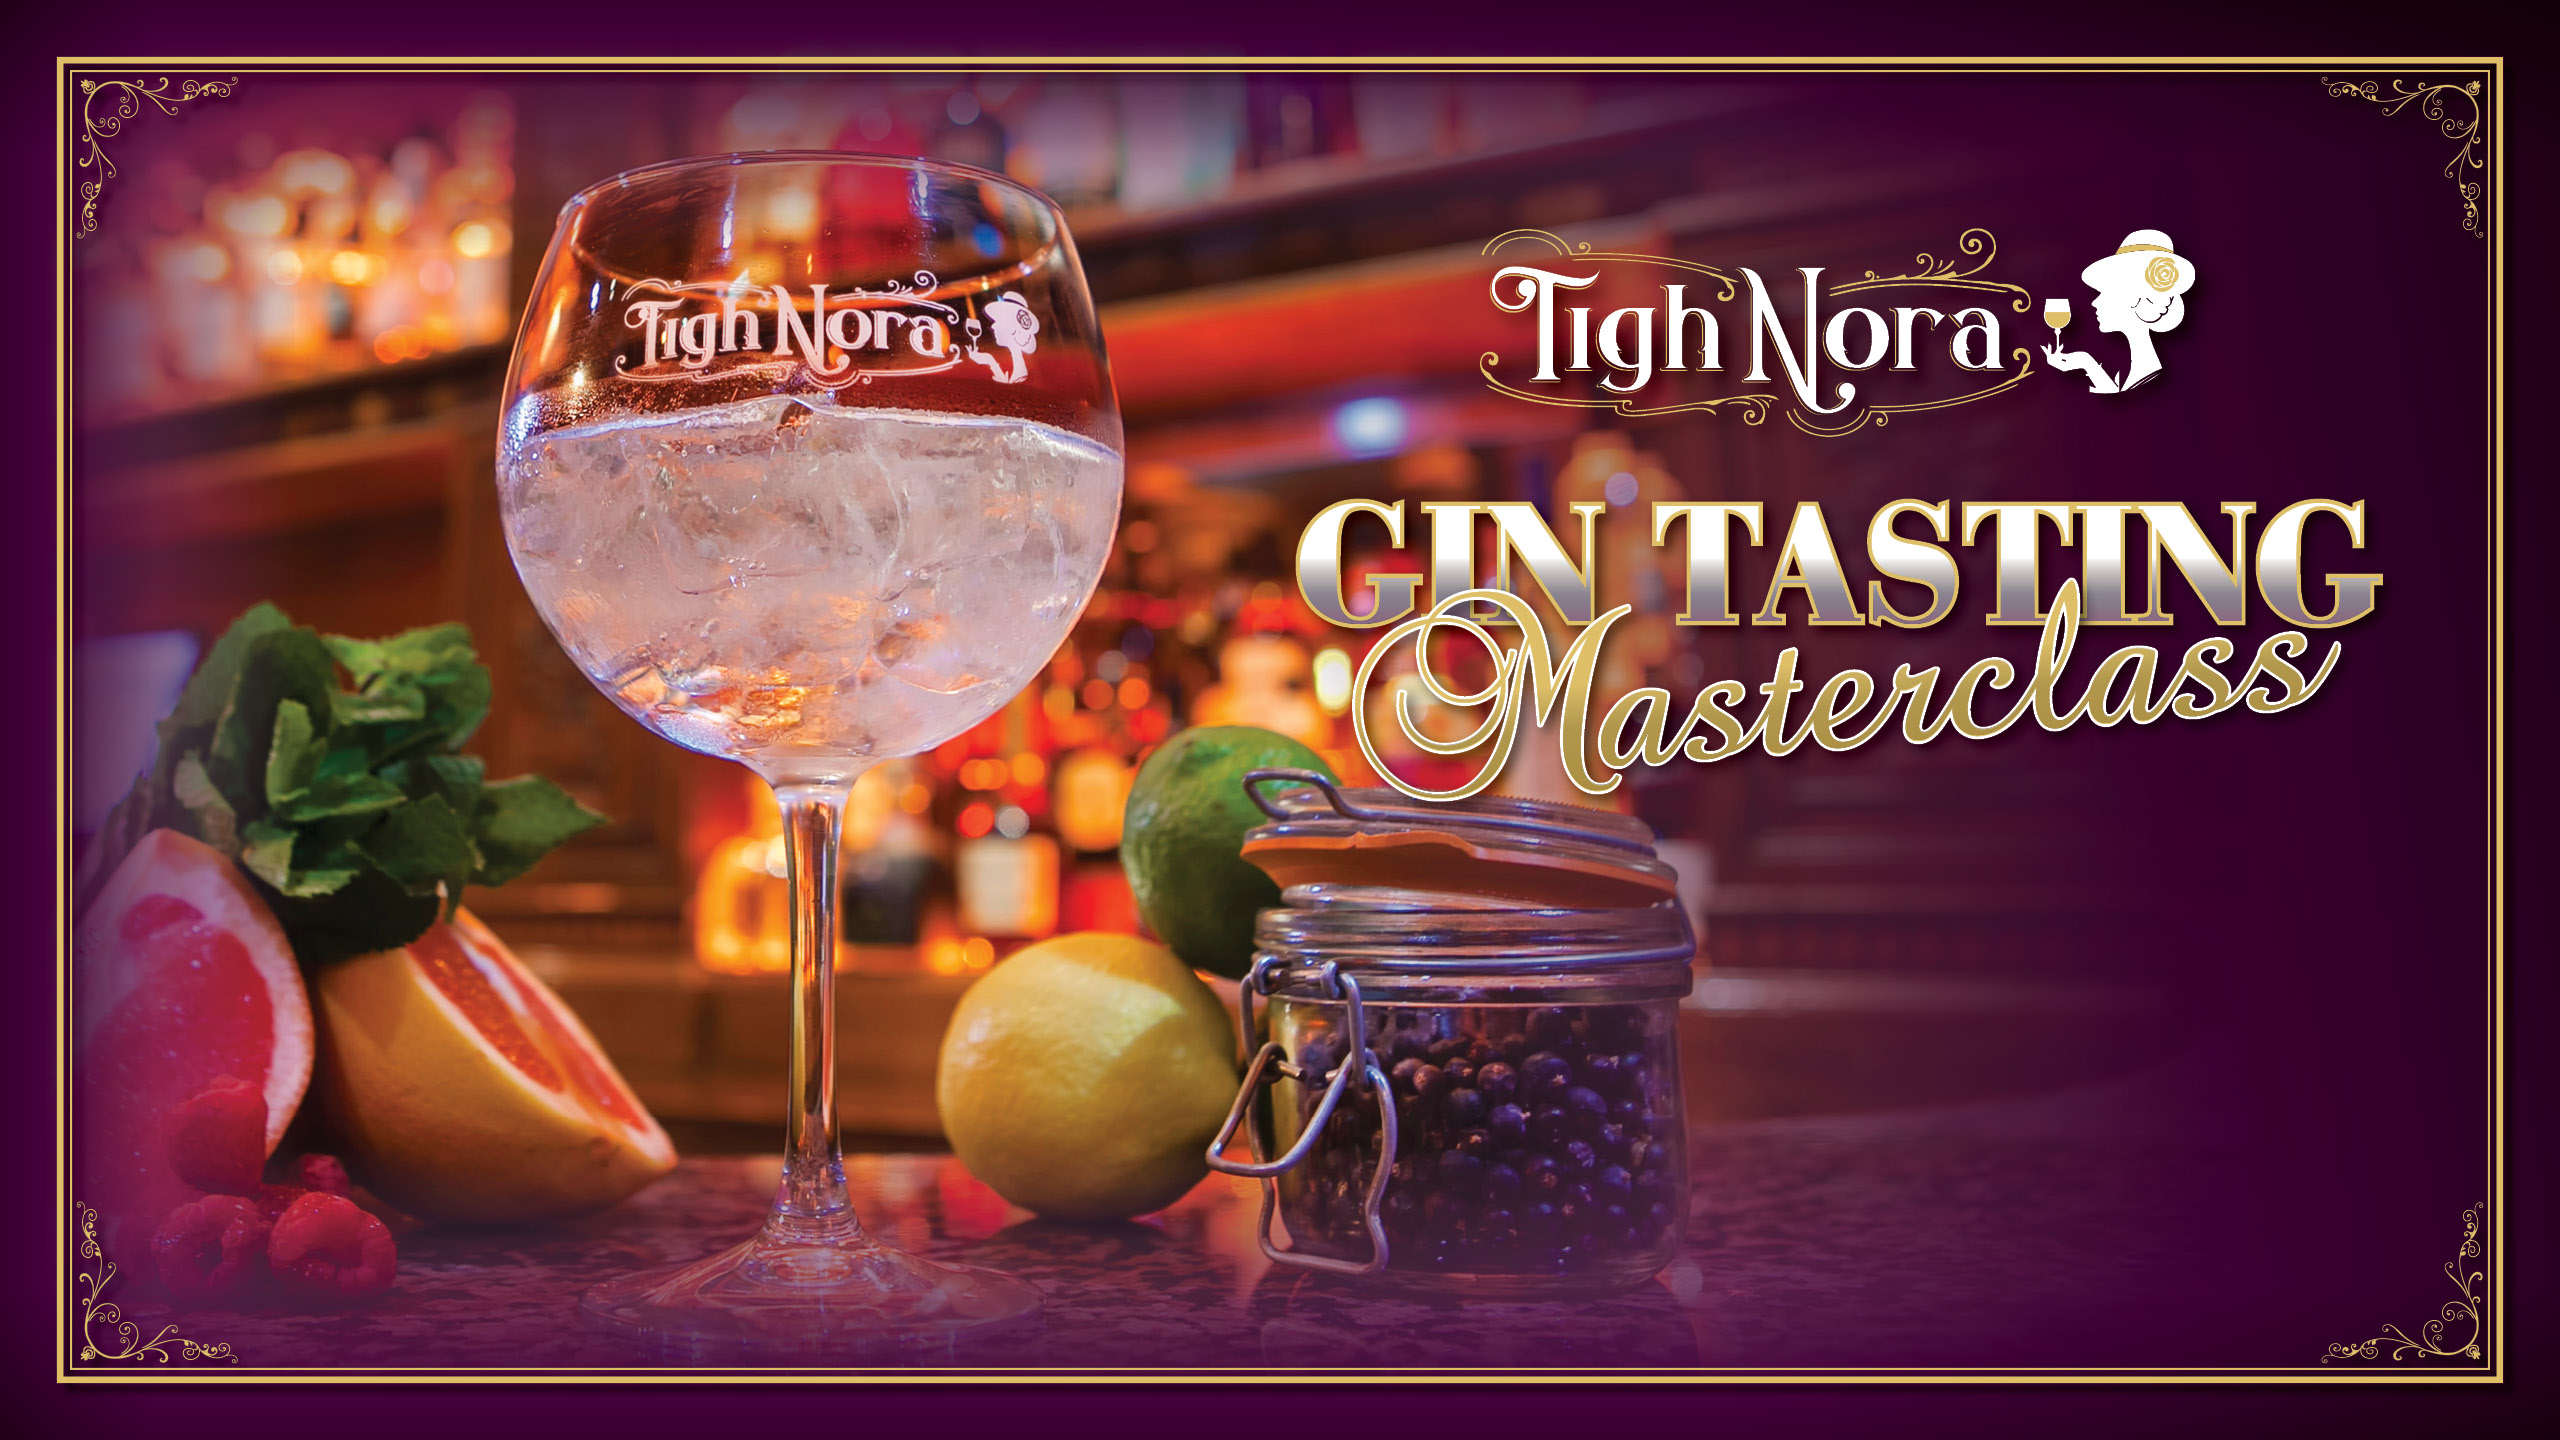 Go To Gin School With A Tigh Nora Tasting Masterclass